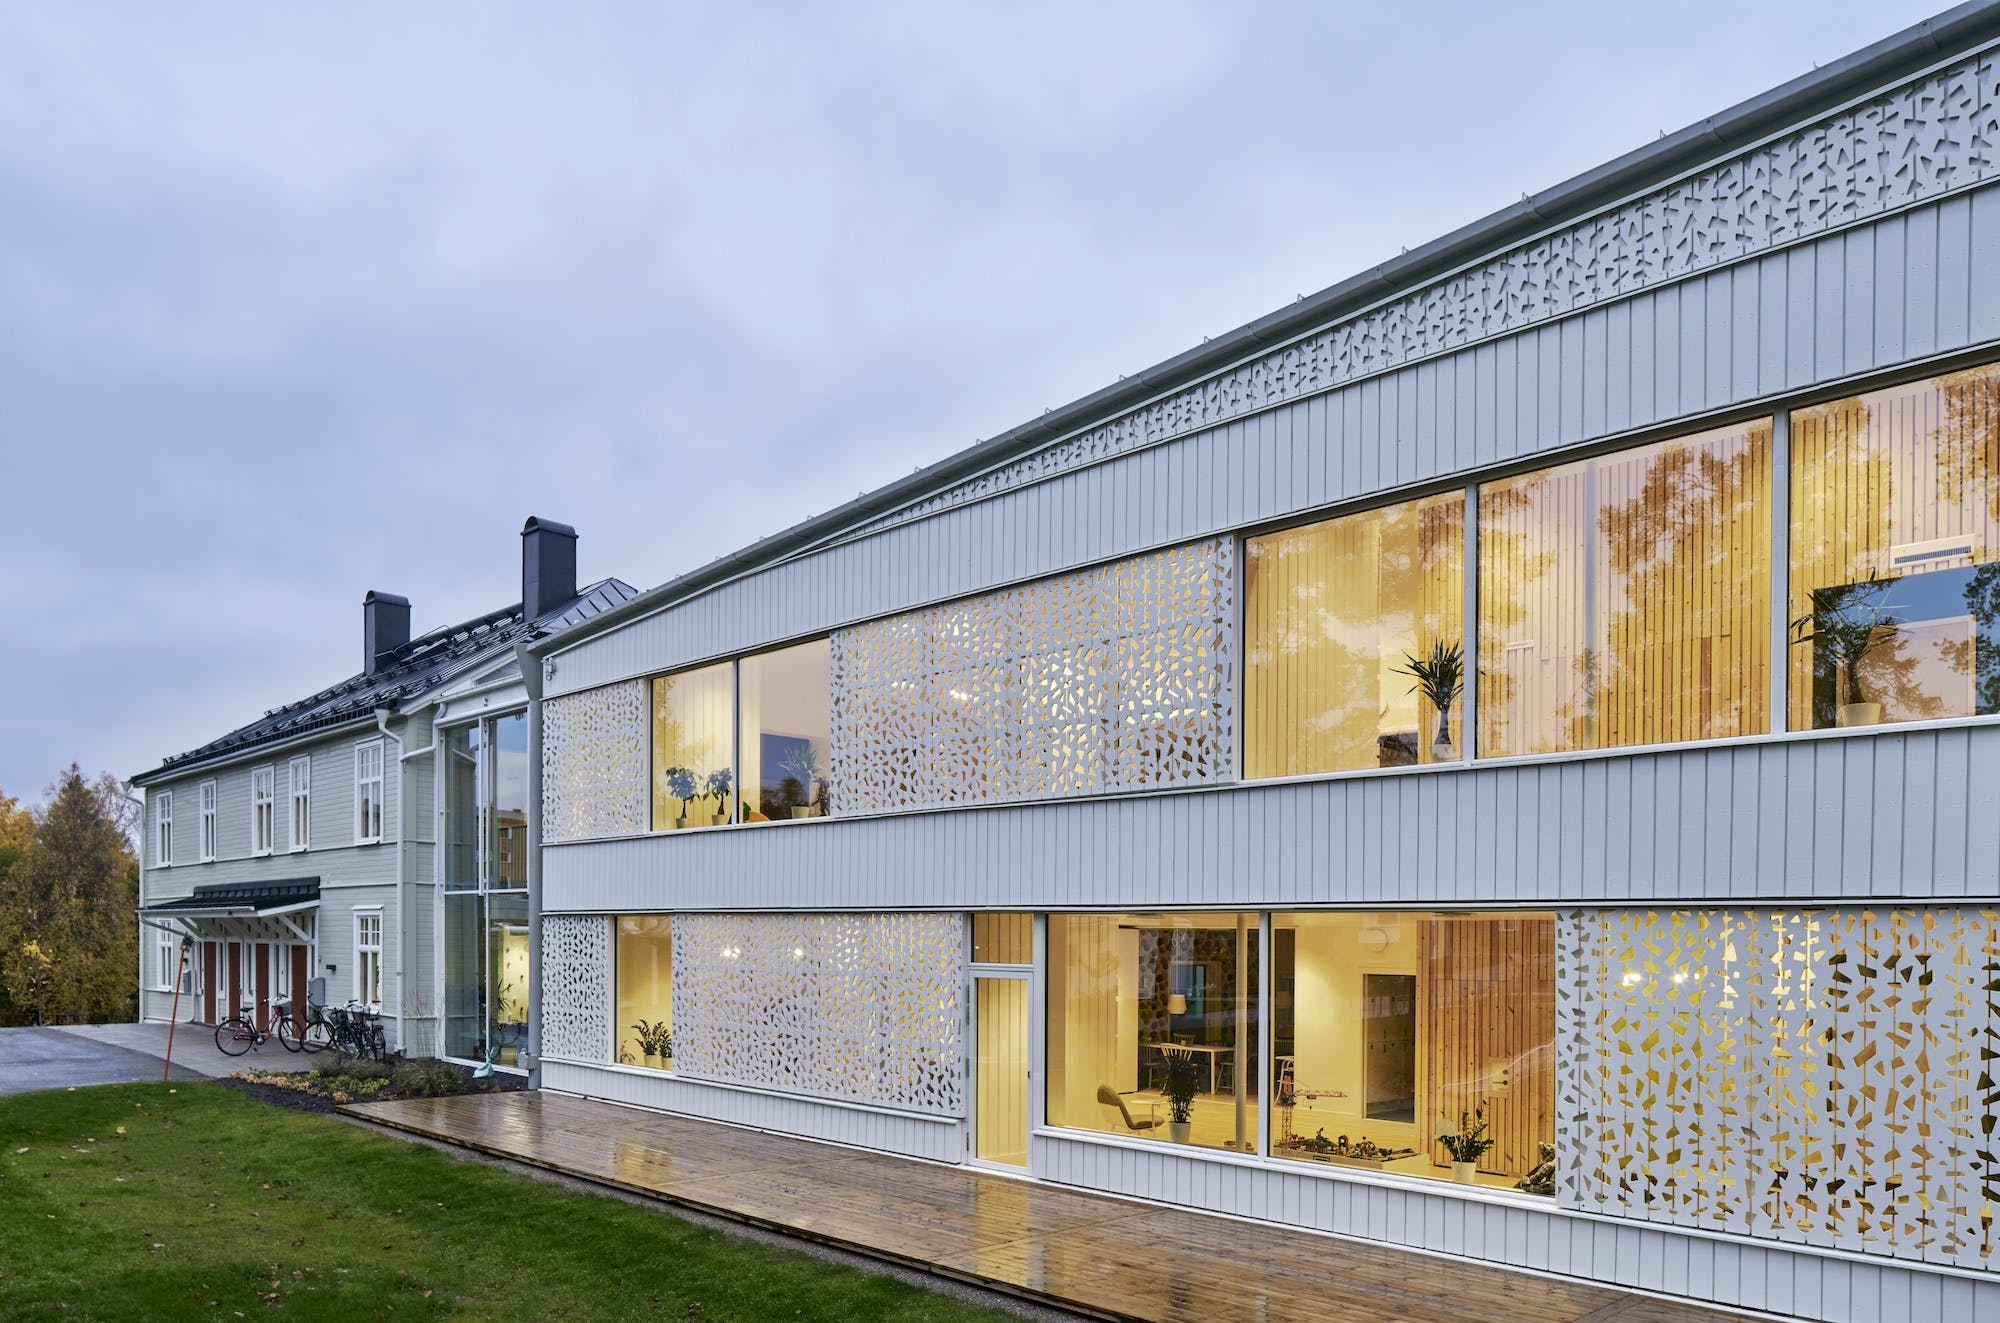 house of heroes by white arkitekter provides space for children with